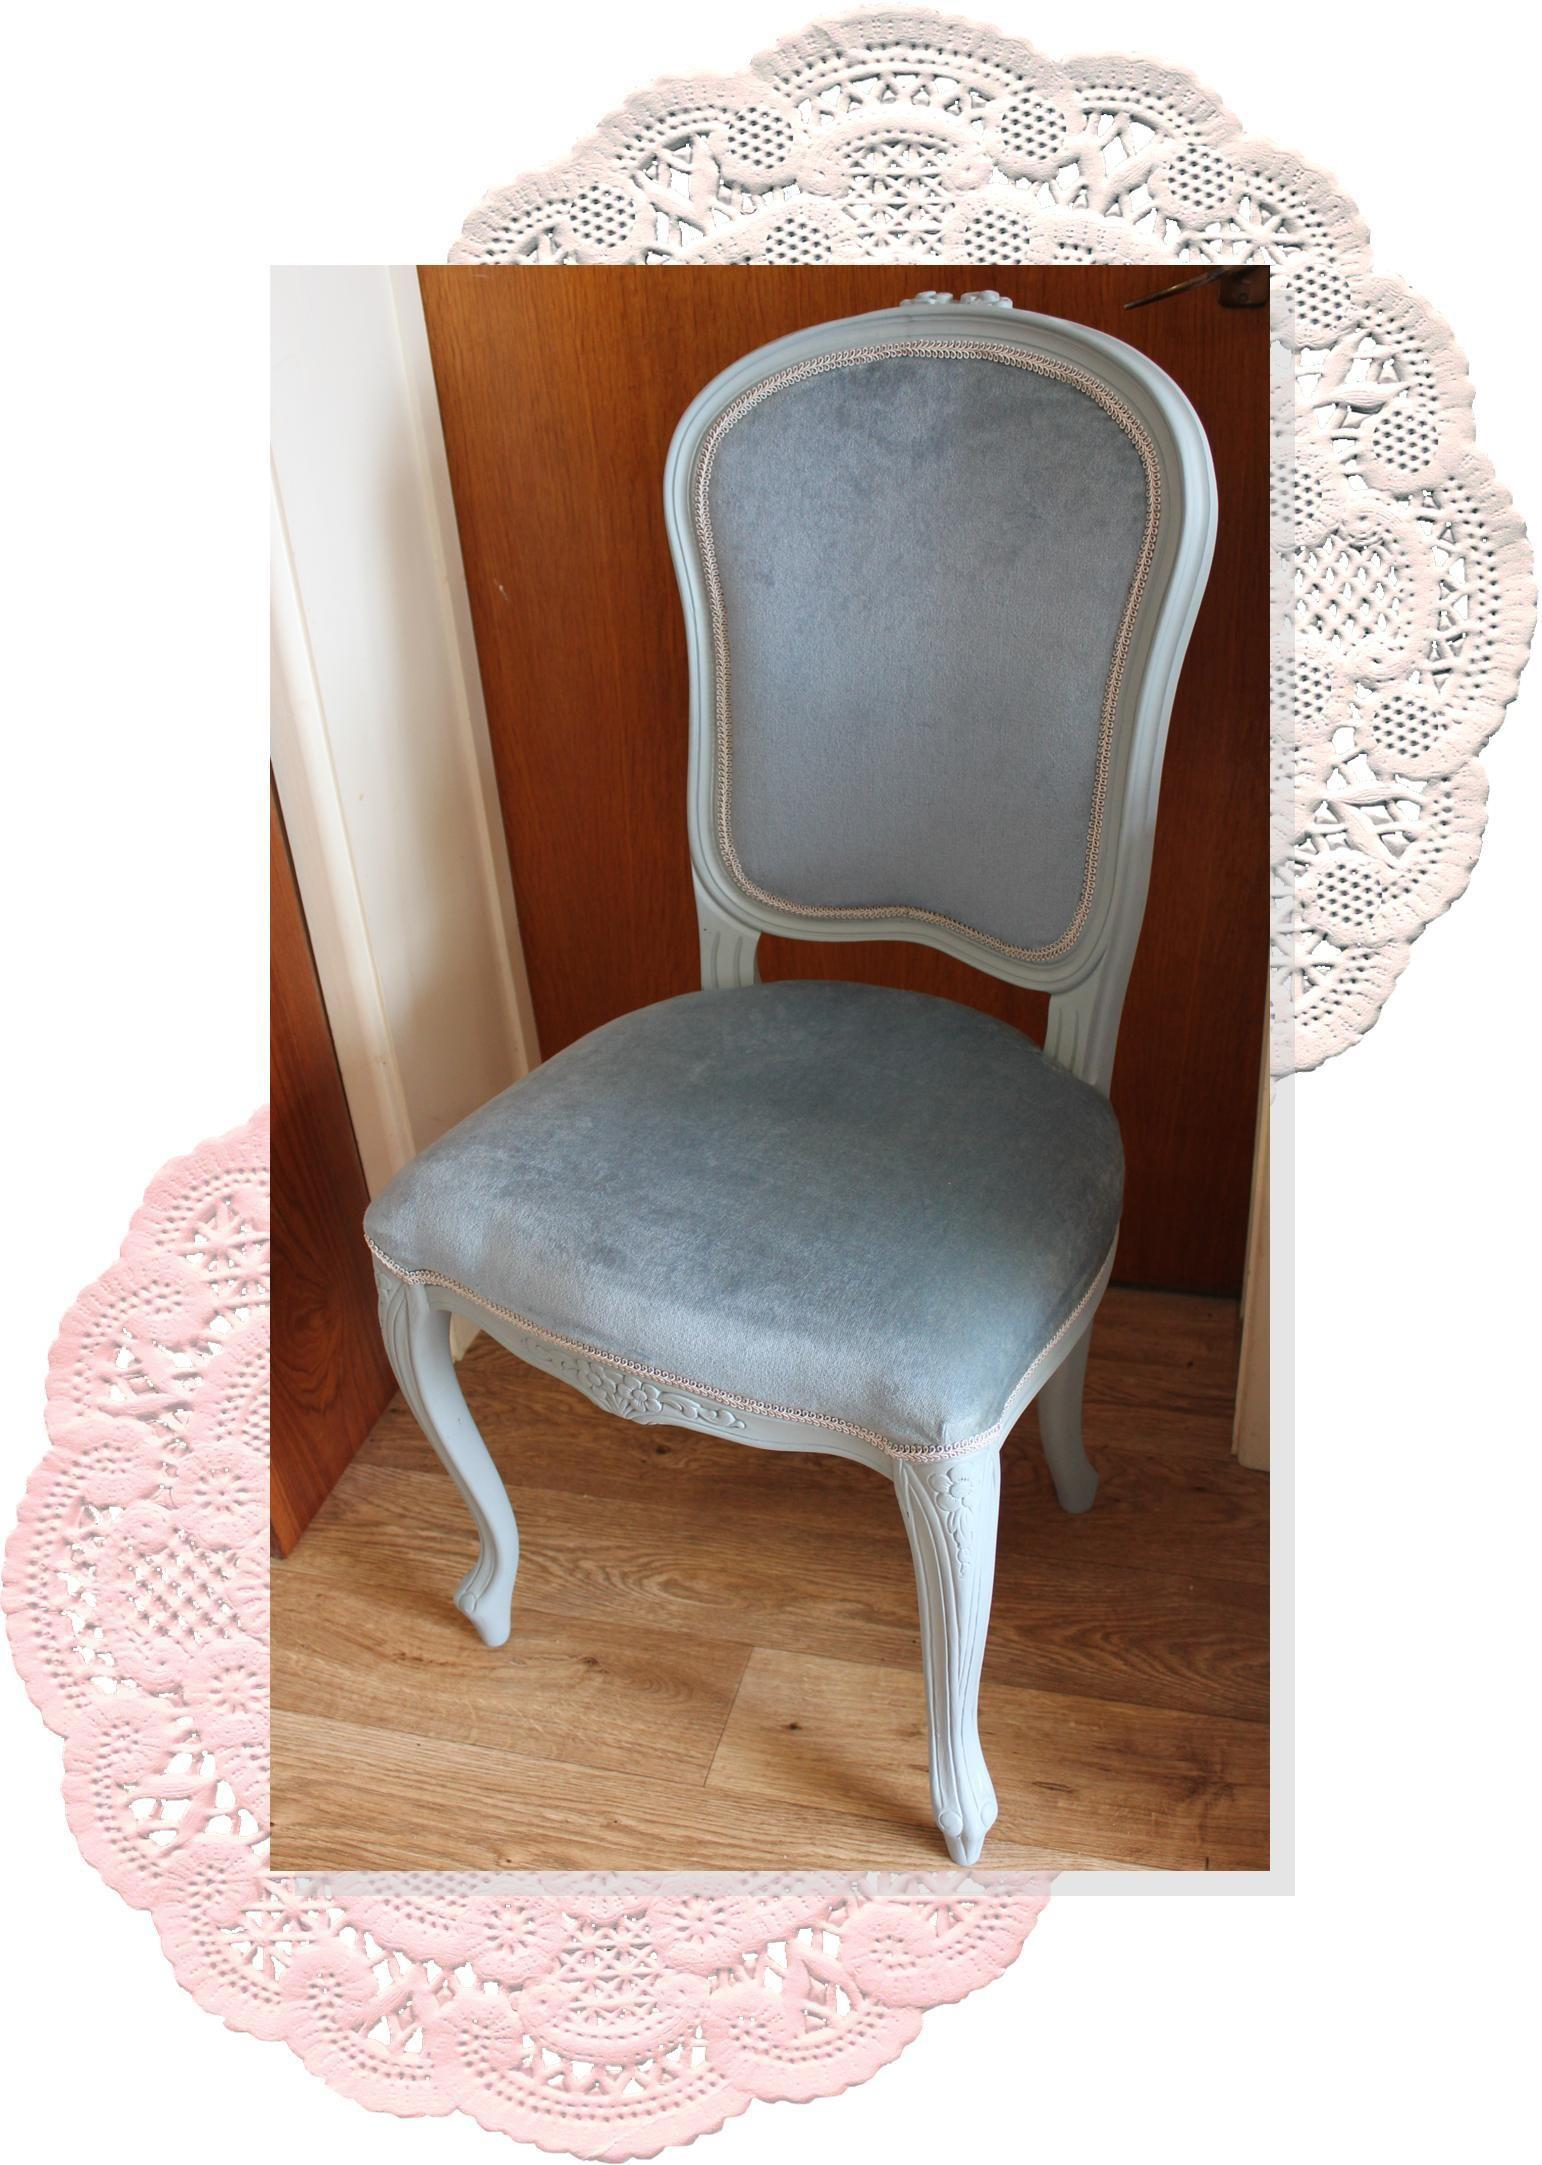 Diy Project Renovating Old Dining Chair